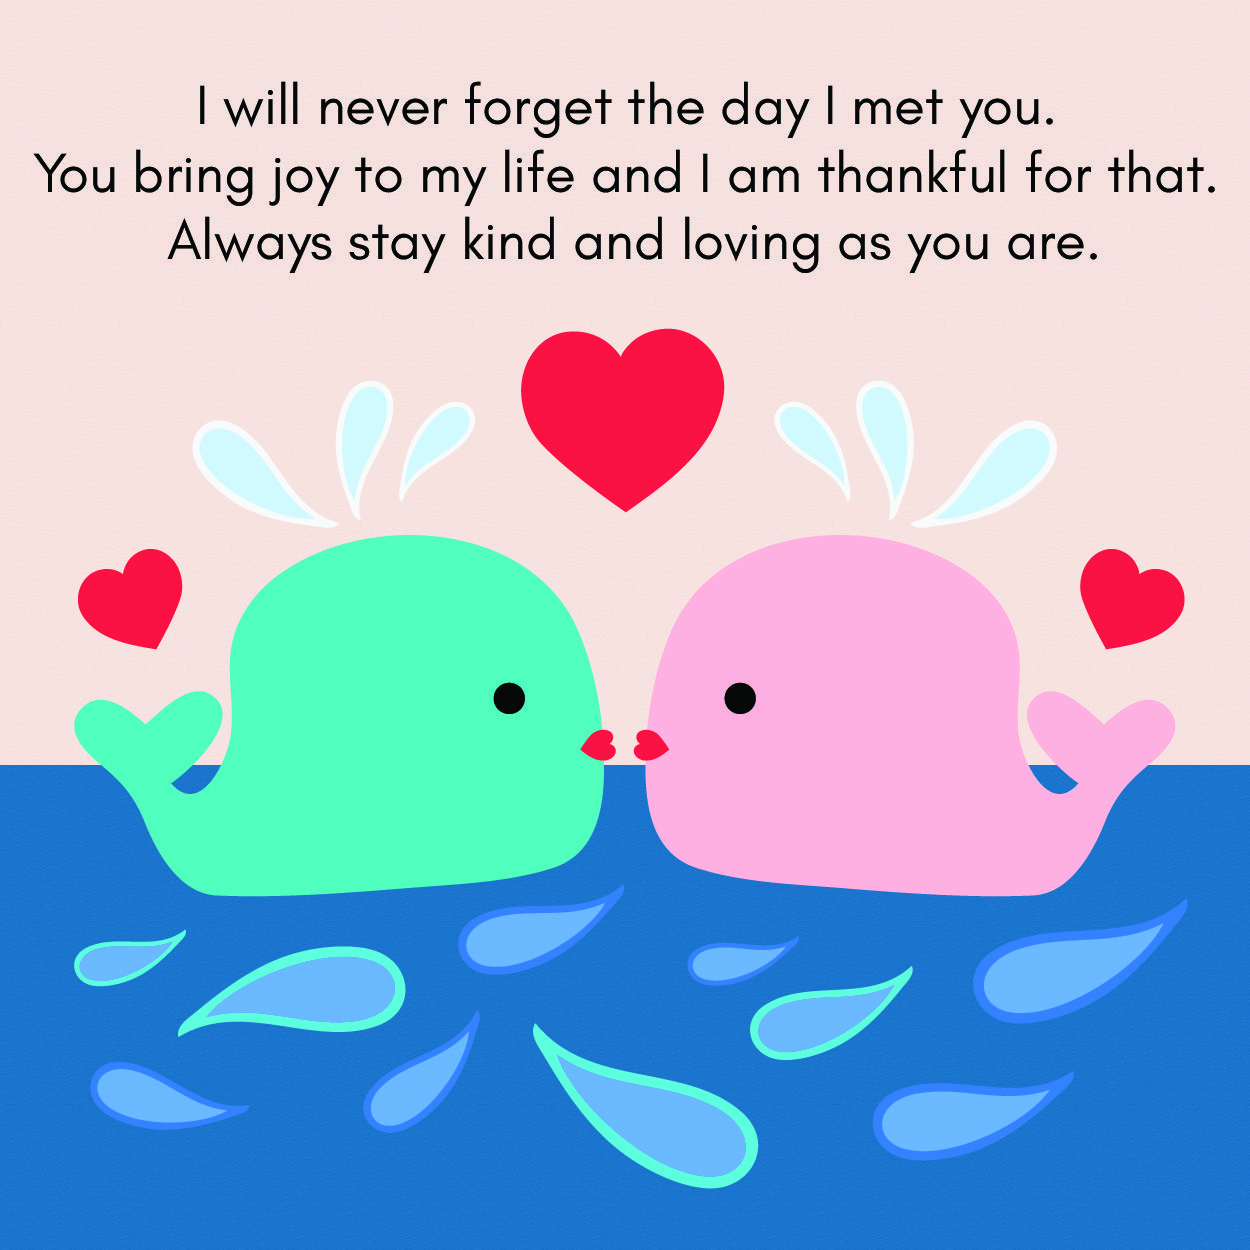 Sweet And Cute Love Quotes: 60 Sweet And Unique Love Quotes For Him